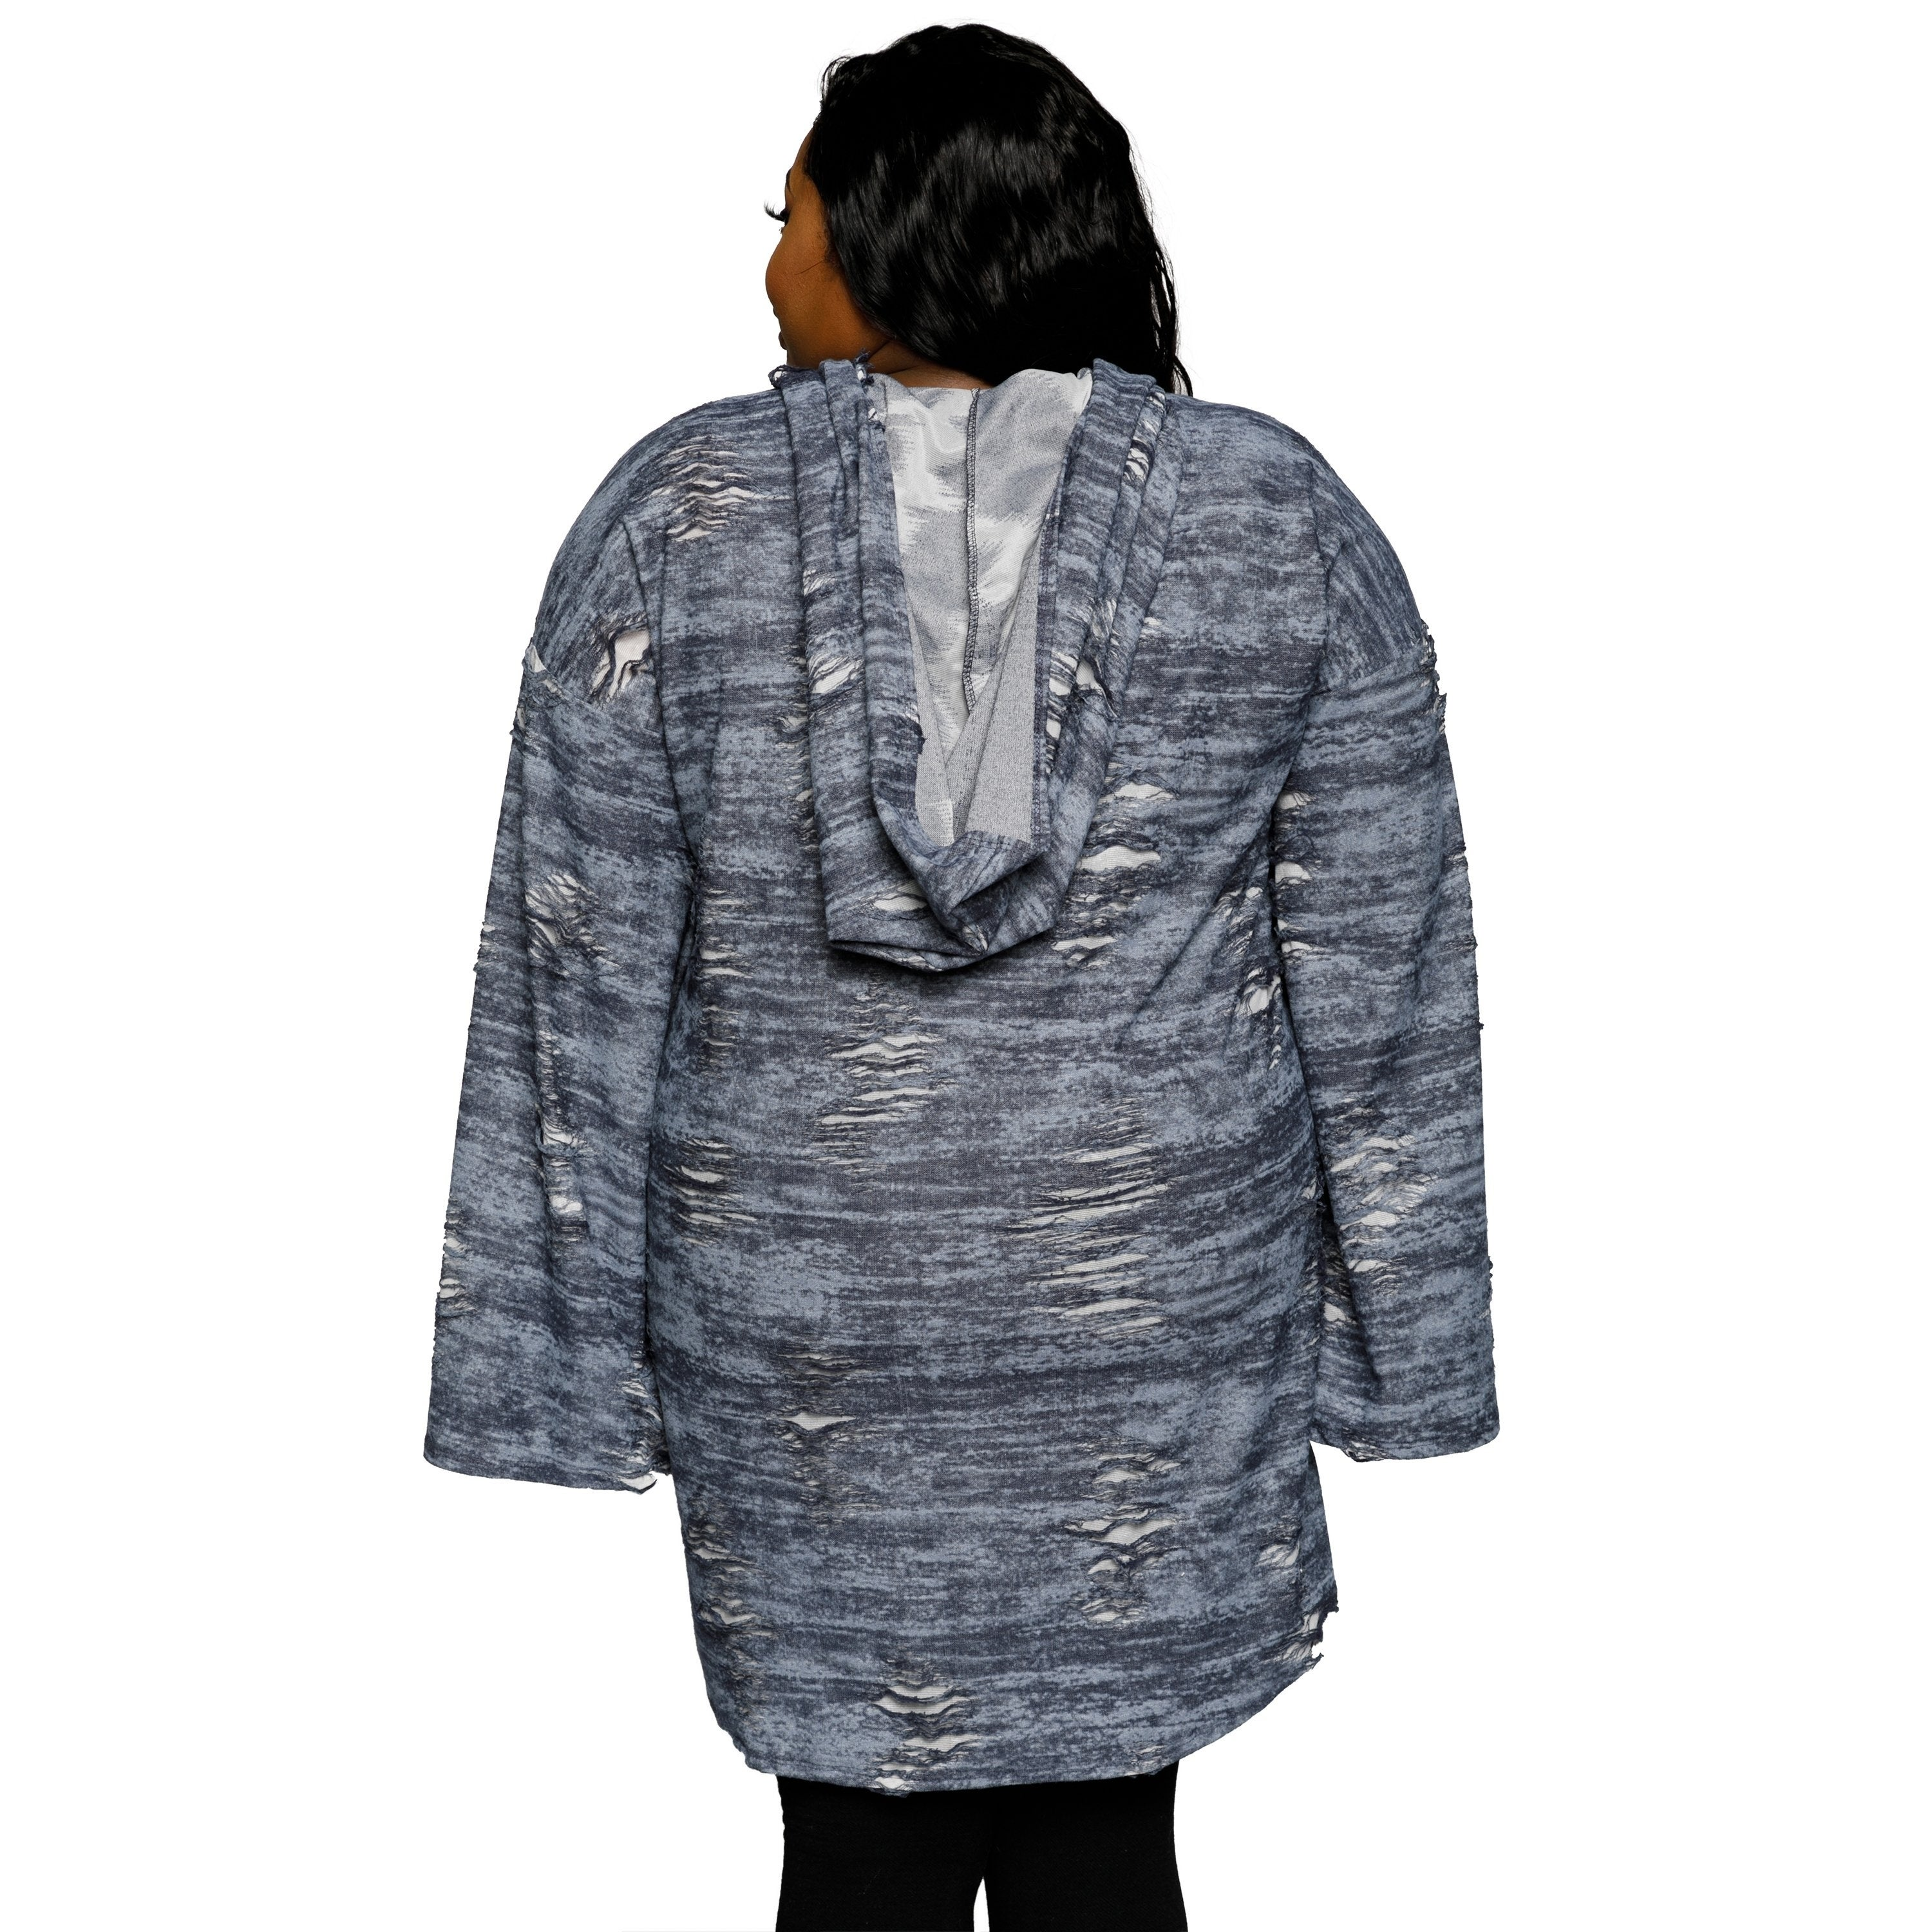 59b1a8a850 Shop Xehar Womens Plus Size Distressed Oversized Hoodie Sweater Dress -  Ships To Canada - Overstock - 18820685